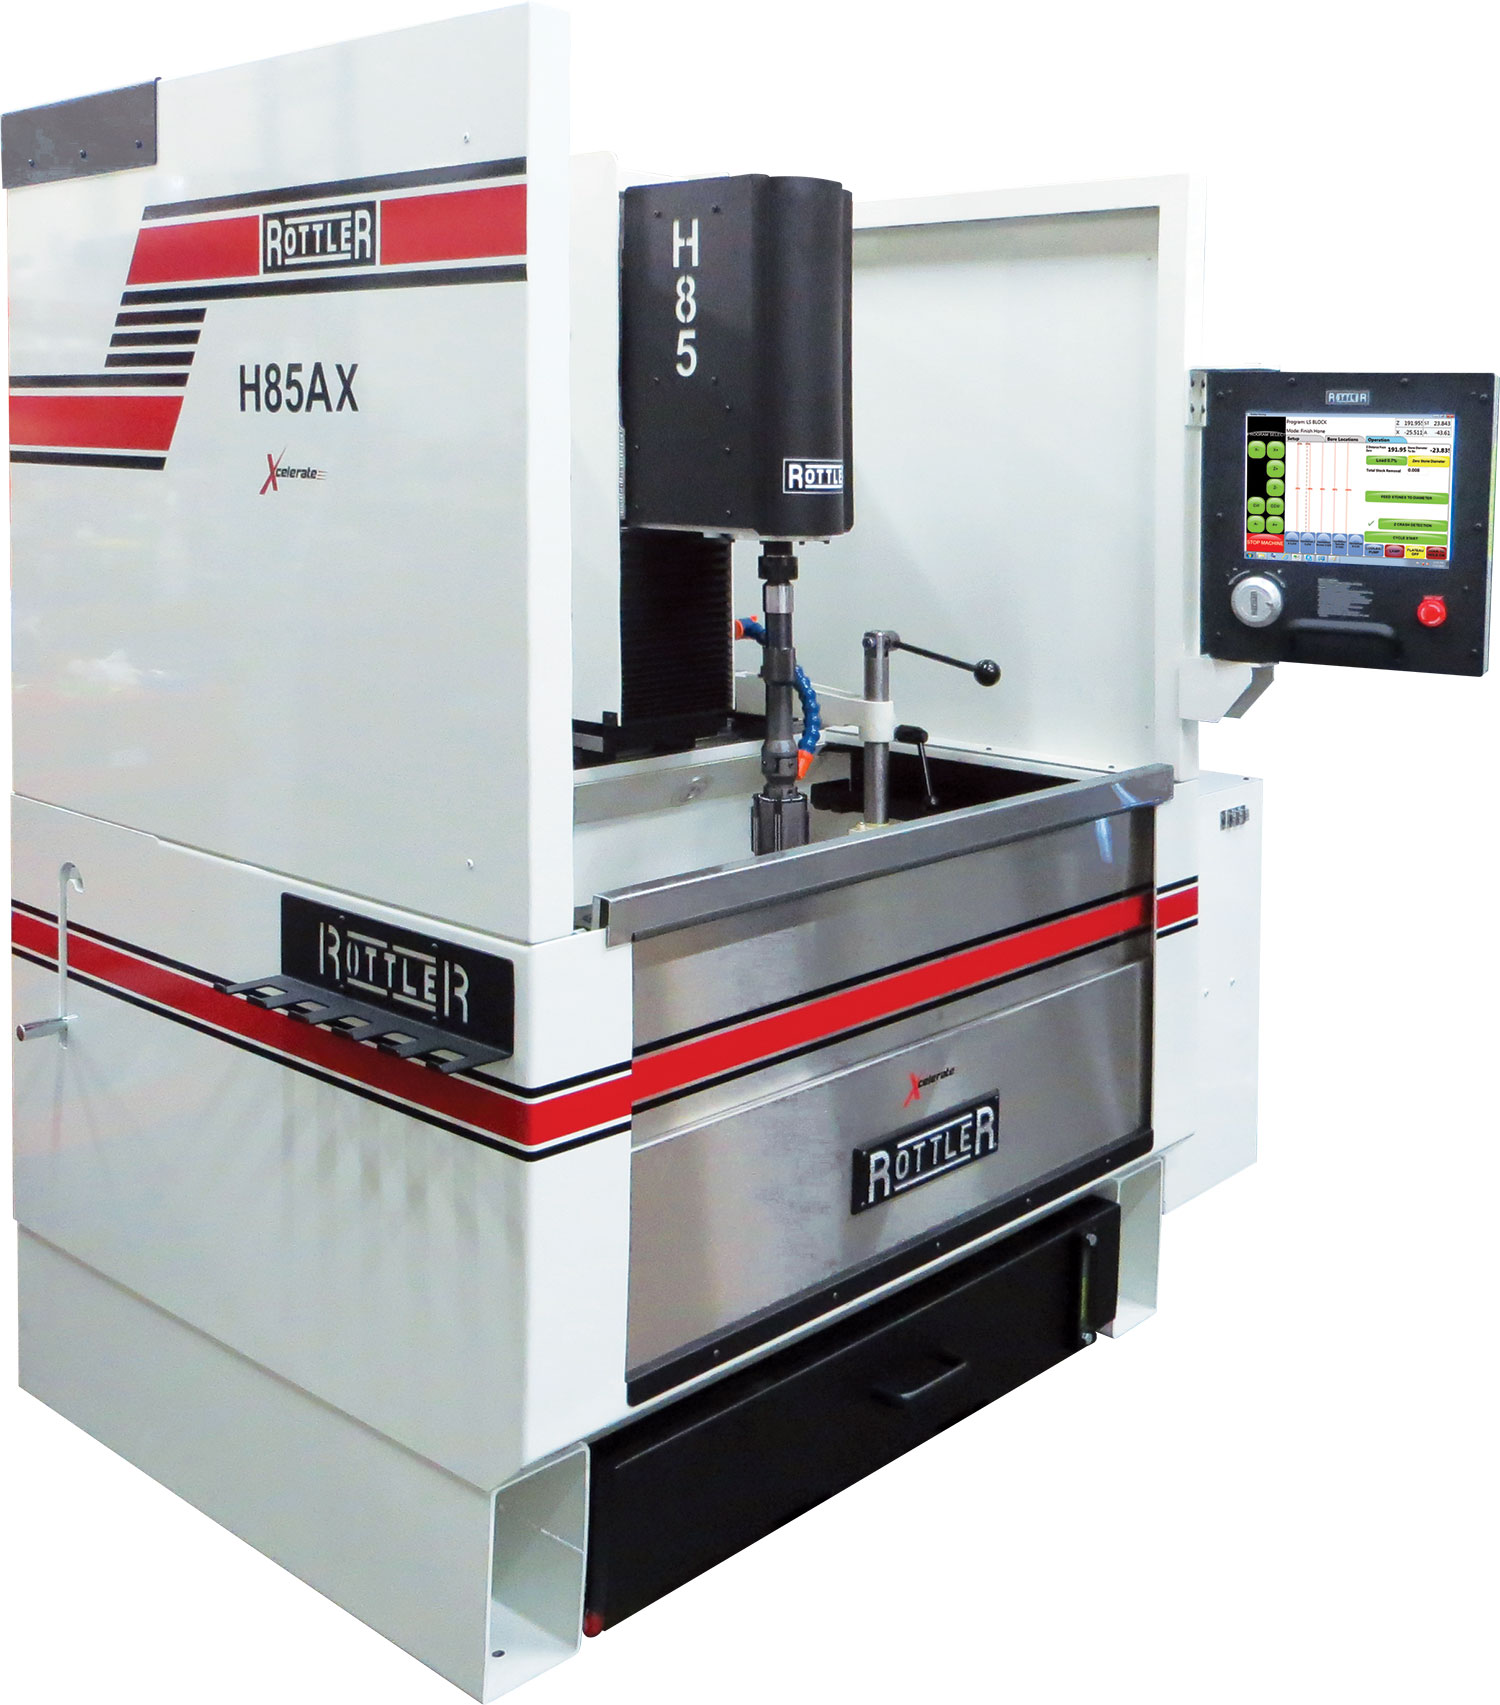 Rottler H85AX CNC Automatic Vertical Honing Machine with Hole-to